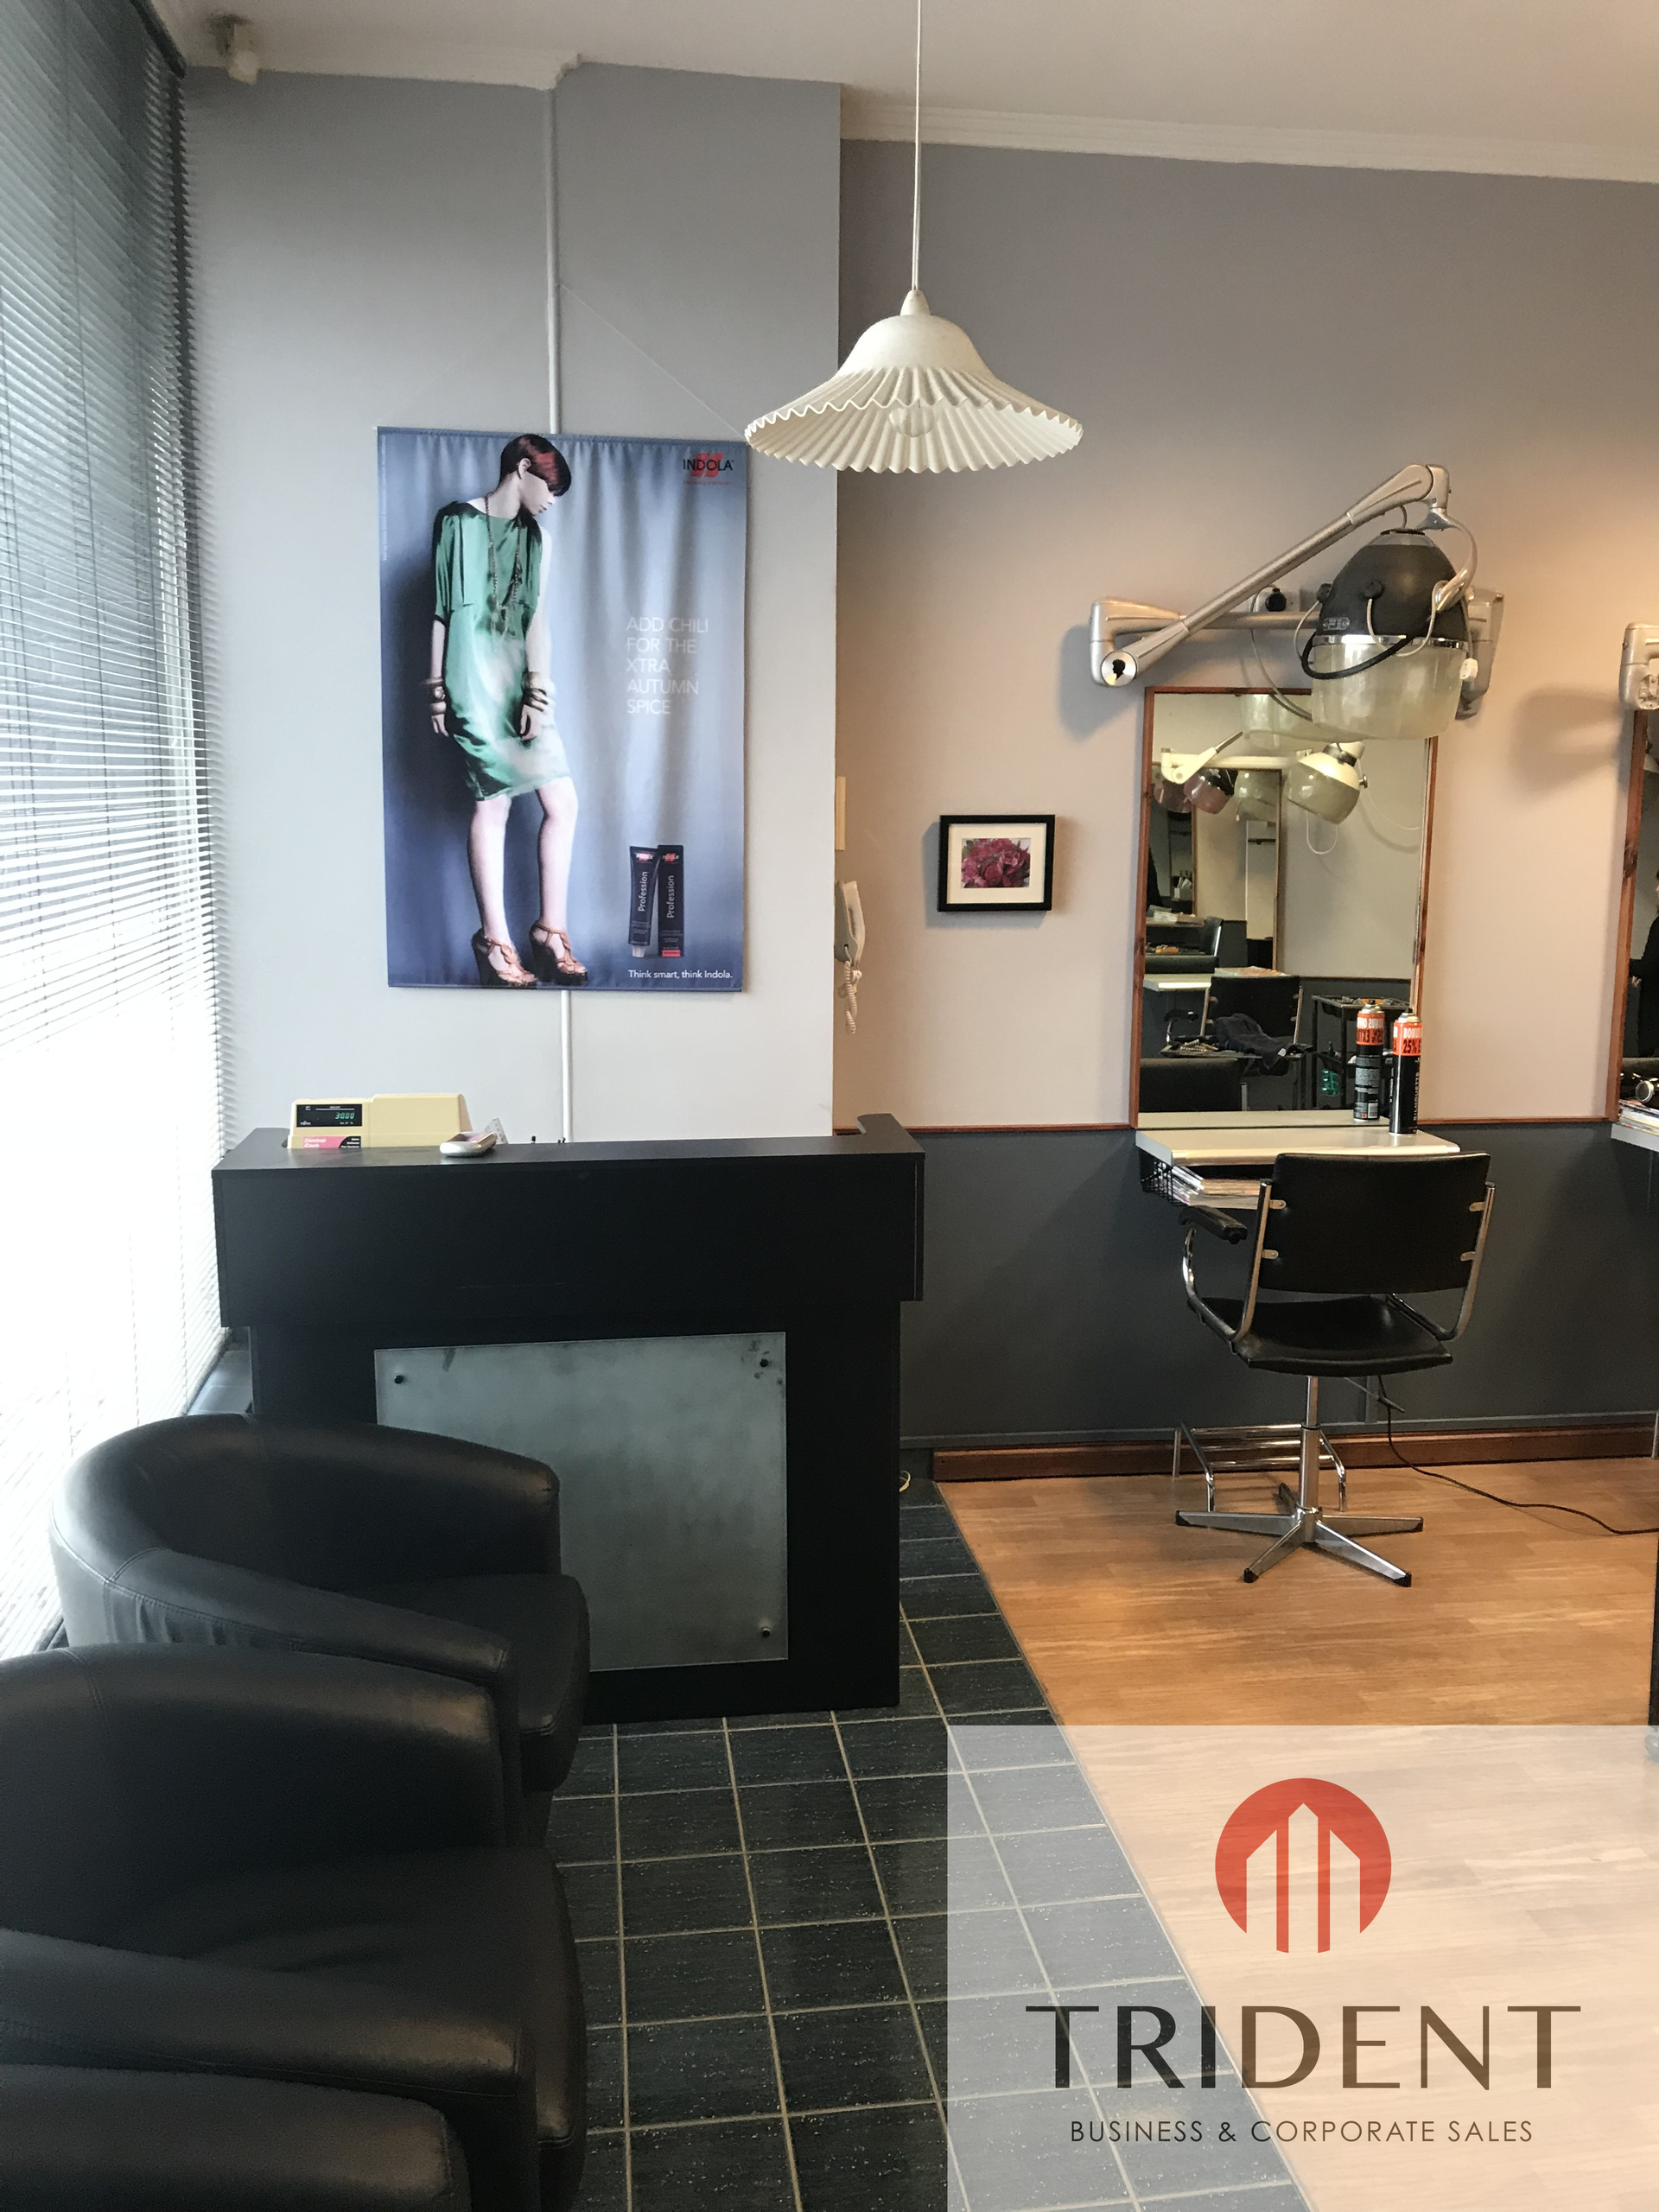 Hair and Beauty Salon - Established 30 years